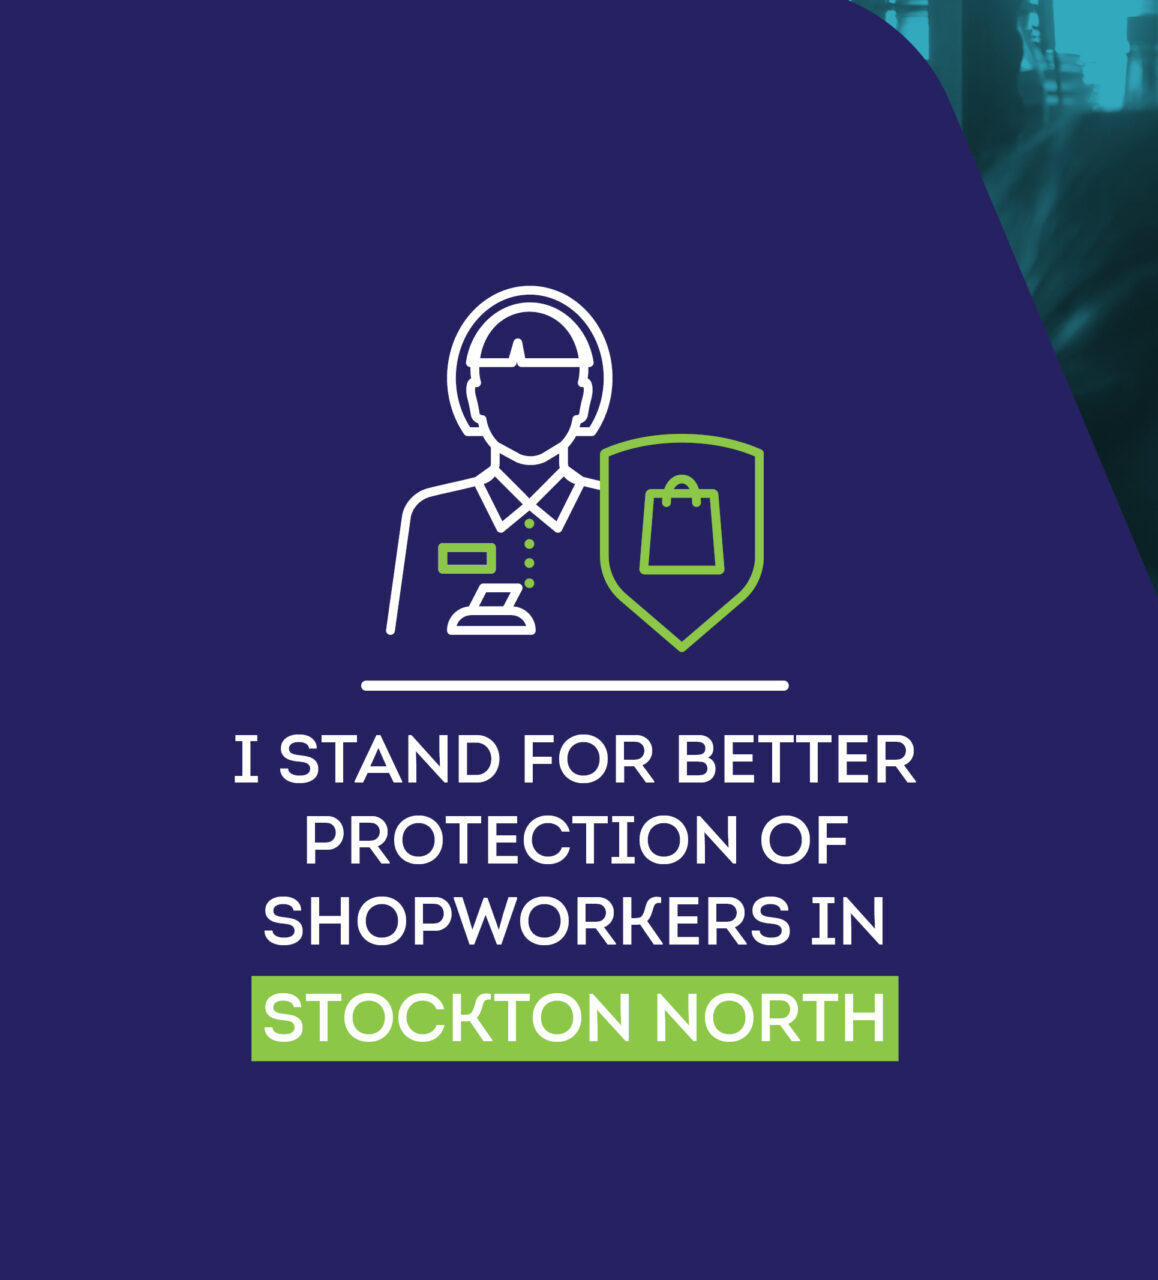 Alex takes action to combat retail violence and protect retail staff